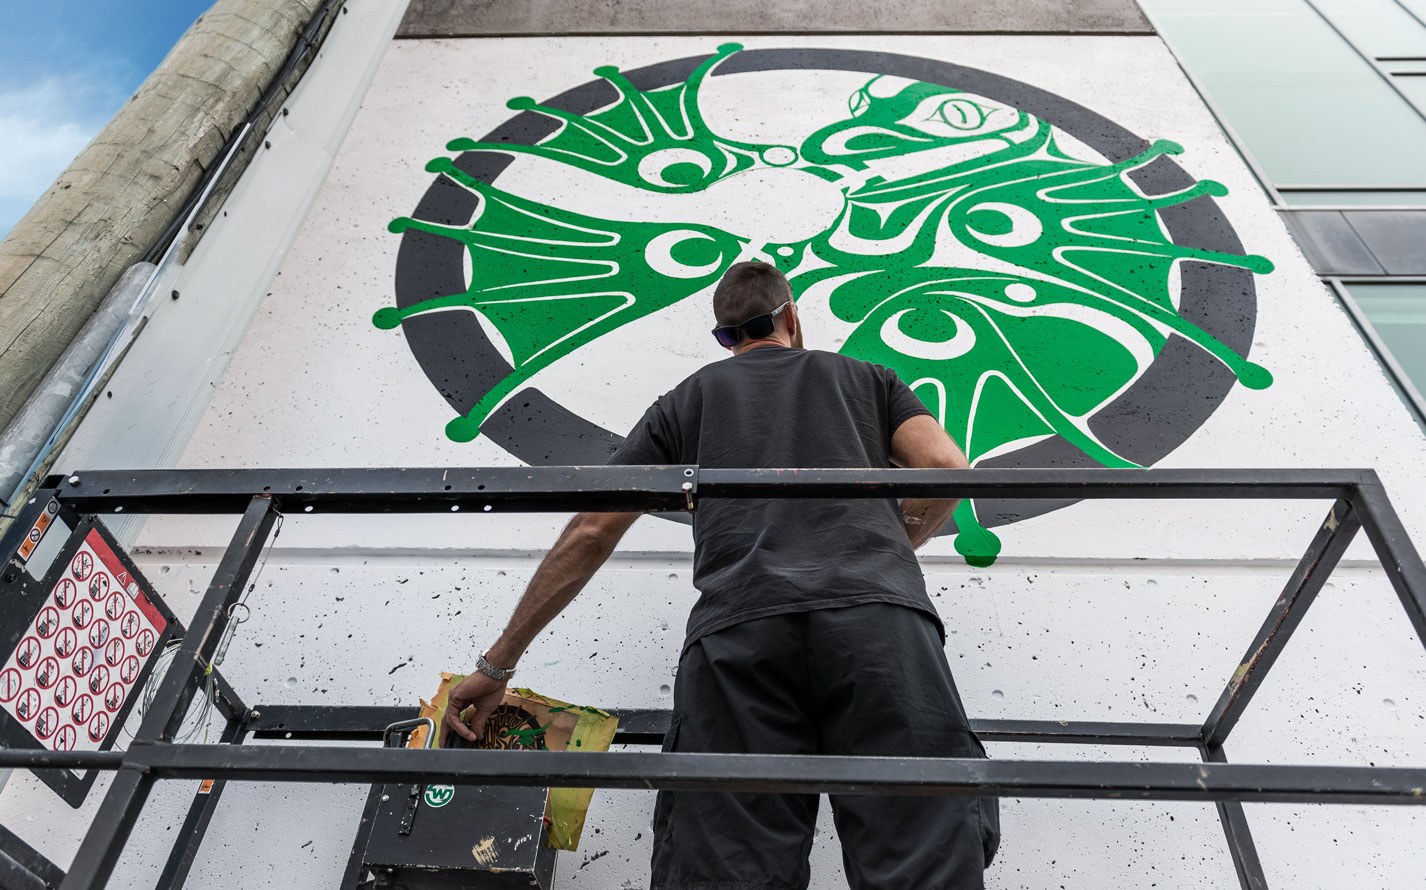 "VANCOUVER MURAL FESTIVAL RETURNS AUGUST 1-10 WITH 25 NEW MURALS AND AN EXPANDED 10 DAY PROGRAM OF EVENTS CELEBRATING PUBLIC ART AND COMMUNITY!   June 13, 2019 (Vancouver, BC) - Create Vancouver Society with support from Canadian Heritage, the Province of British Columbia and Mount Pleasant BIA, proudly announces the 4th Annual Vancouver Mural Festival. Following the success of last year's celebrations (drawing crowds of 120,000+ to the streets of Mount Pleasant), the Vancouver Mural Festival returns with expanded programming featuring 10 days of events including a Gallery Show, Flash Tattoo, Mural Tours, Public Talks, Parties and much more… culminating in the much loved Mount Pleasant Street Party on Saturday, August 10 from 12-7pm.  Spanning over 14 city blocks, the Saturday street party transforms the neighbourhood into a dynamic, living art space connecting communities across the Lower Mainland and beyond. Free, family-friendly, and full of activities for everyone, the celebration features the highly-anticipated debut of 25+ new murals (on top of the area's 120+ murals from past years), 4 beer gardens, 2 live music stages, 2 markets, extensive food trucks, live art, DJ/dance battles, a new Family Zone and much more.  Speaking to his passion for the Vancouver Mural Festival, Co-founder and Executive Director David Vertesi says, ""The incredible growth of VMF over the last four years is a testament to the power of public art to not only brighten up our neighbourhoods but also to connect people, places, stories, and ideas. Whether spotlighting important social issues or simply putting smiles on people's faces, we're excited to support a diverse range of artistic visions in public space with another year of Vancouver Mural Festival.""  As the city's largest annual, free public art celebration, Vancouver Mural Festival promises an accessible and inclusive event for everyone. Visit vanmuralfest.com and follow @vanmuralfest (#vanmuralfest) on social for more exciting updates and announcements coming soon (including our mural artist and music line-up, schedule of events, and the finale Park Show)."